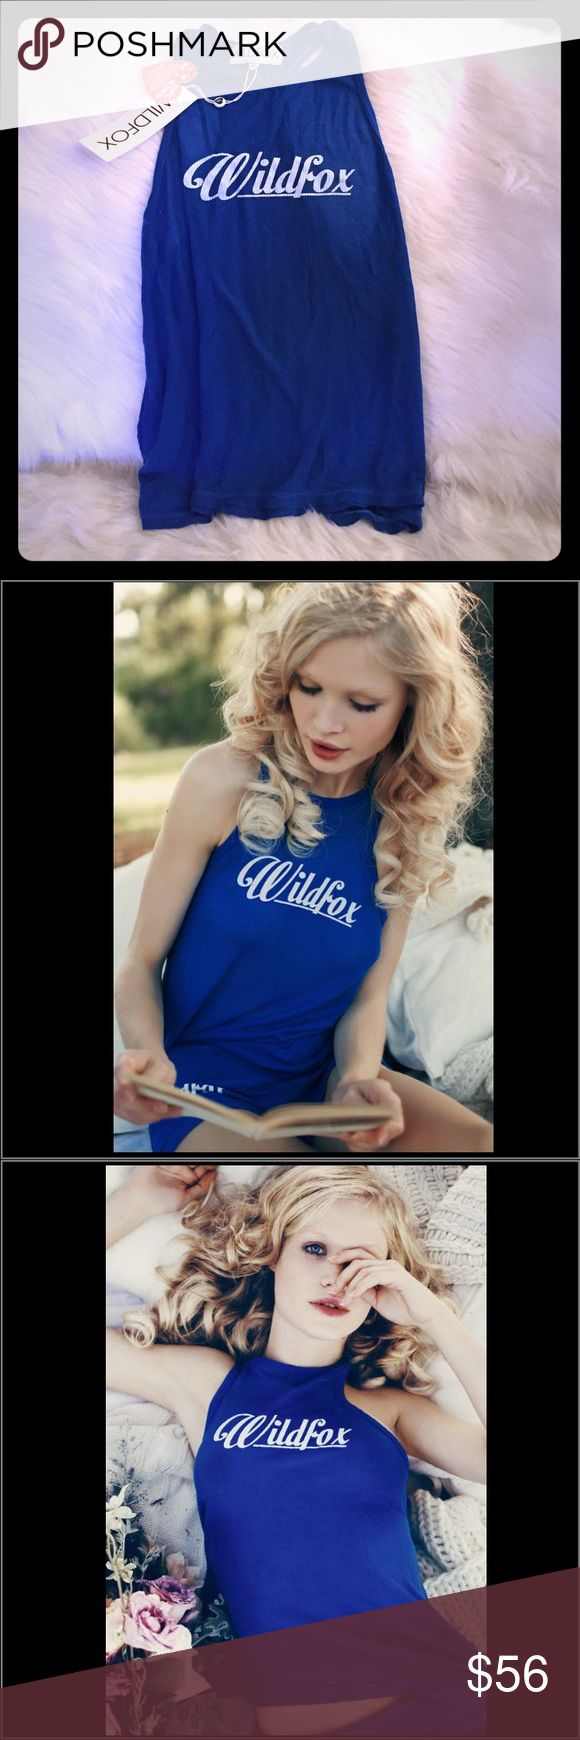 Sale! Wildfox NWT cobalt 60's tank Soft and stunning blue! This perfect Wildfox tank is perfect to match w the cobalt 60's zip up hoodie (also on sale here!) or w your own pants, sweats, or skirts! Wildfox Tops Tank Tops